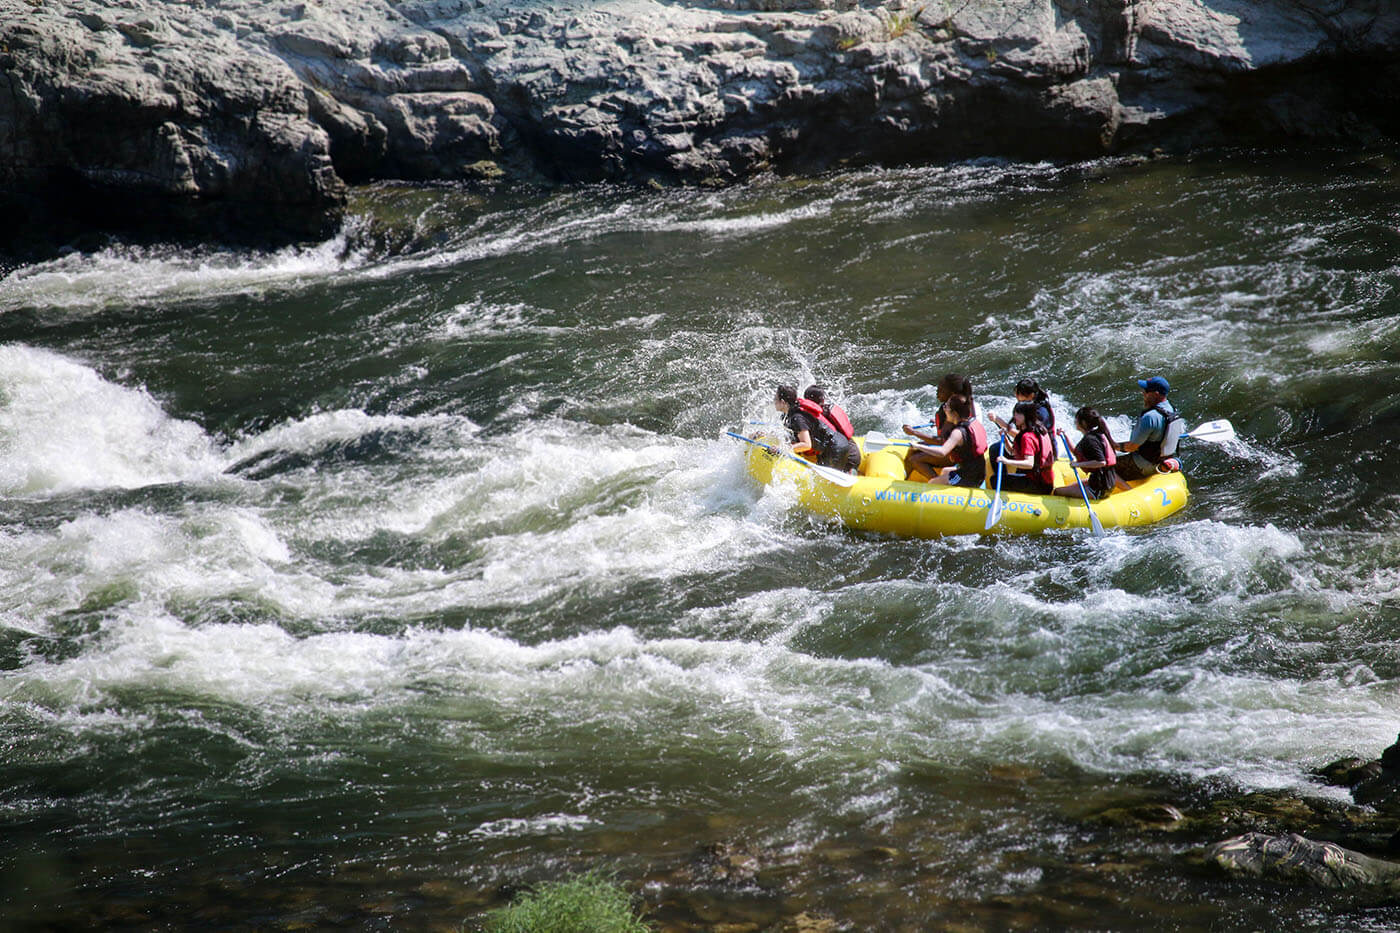 Christian Academy goes rafting